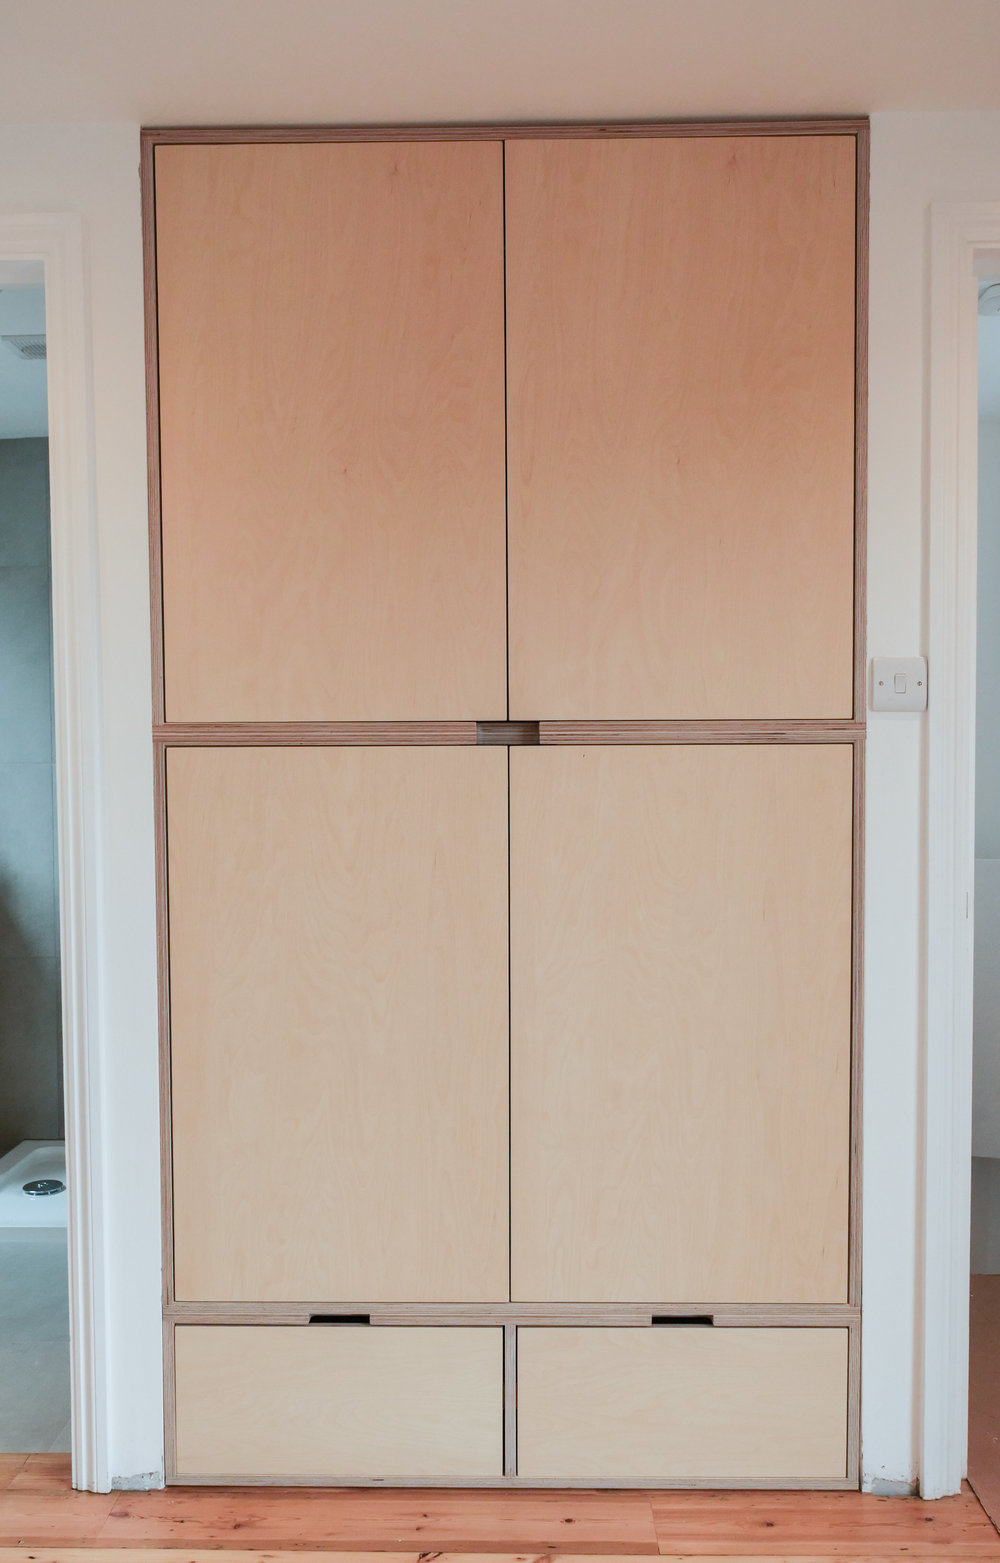 Birch ply bespoke wardrobe